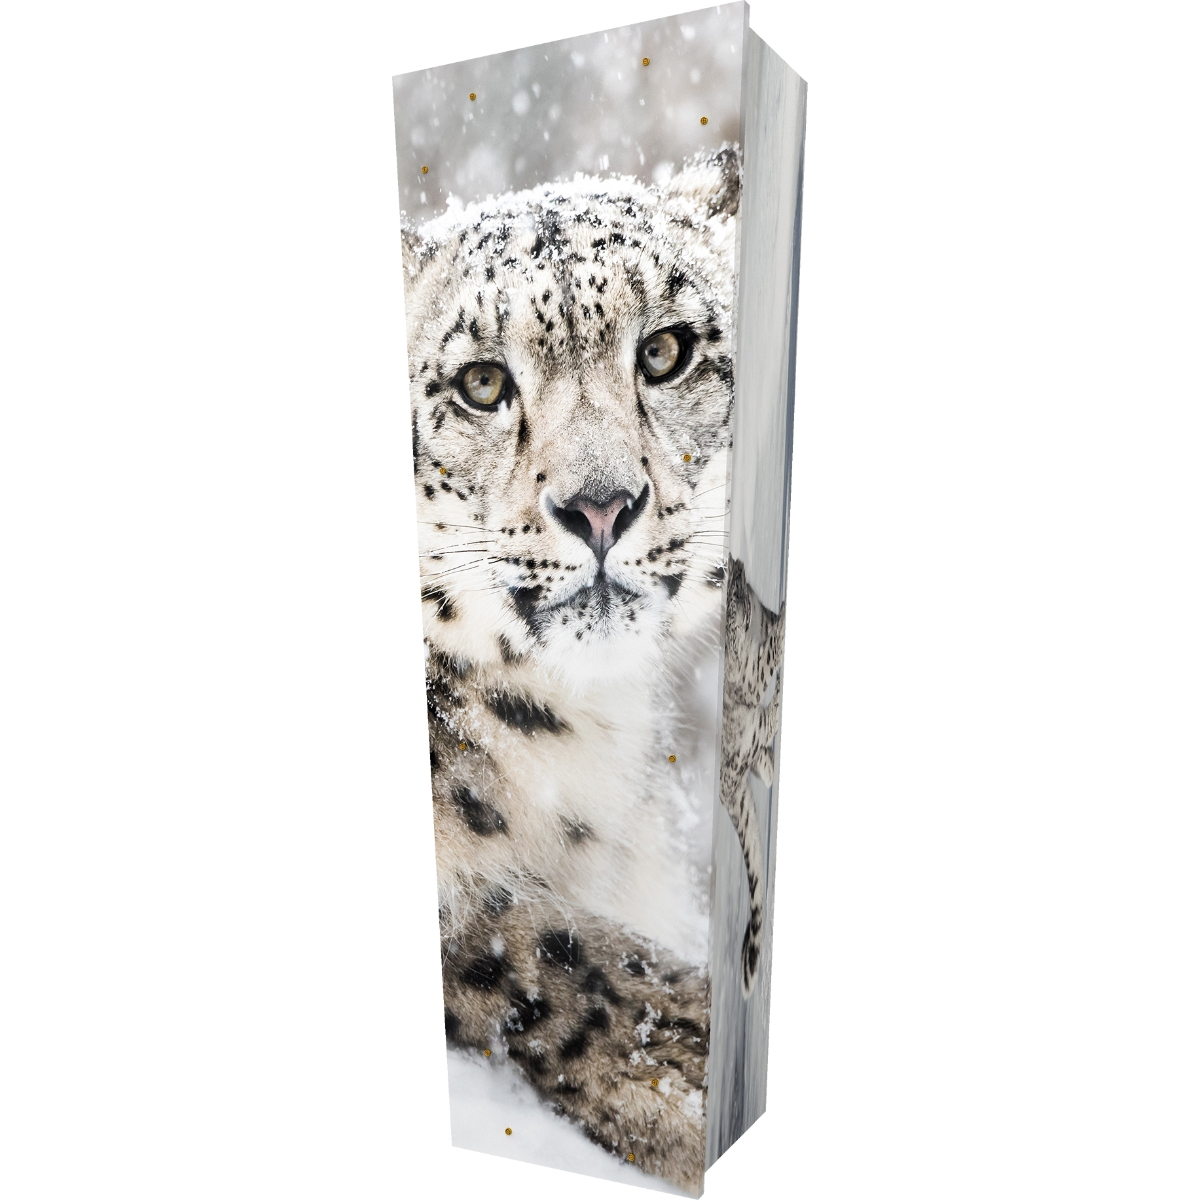 Snow Leopard Coffin